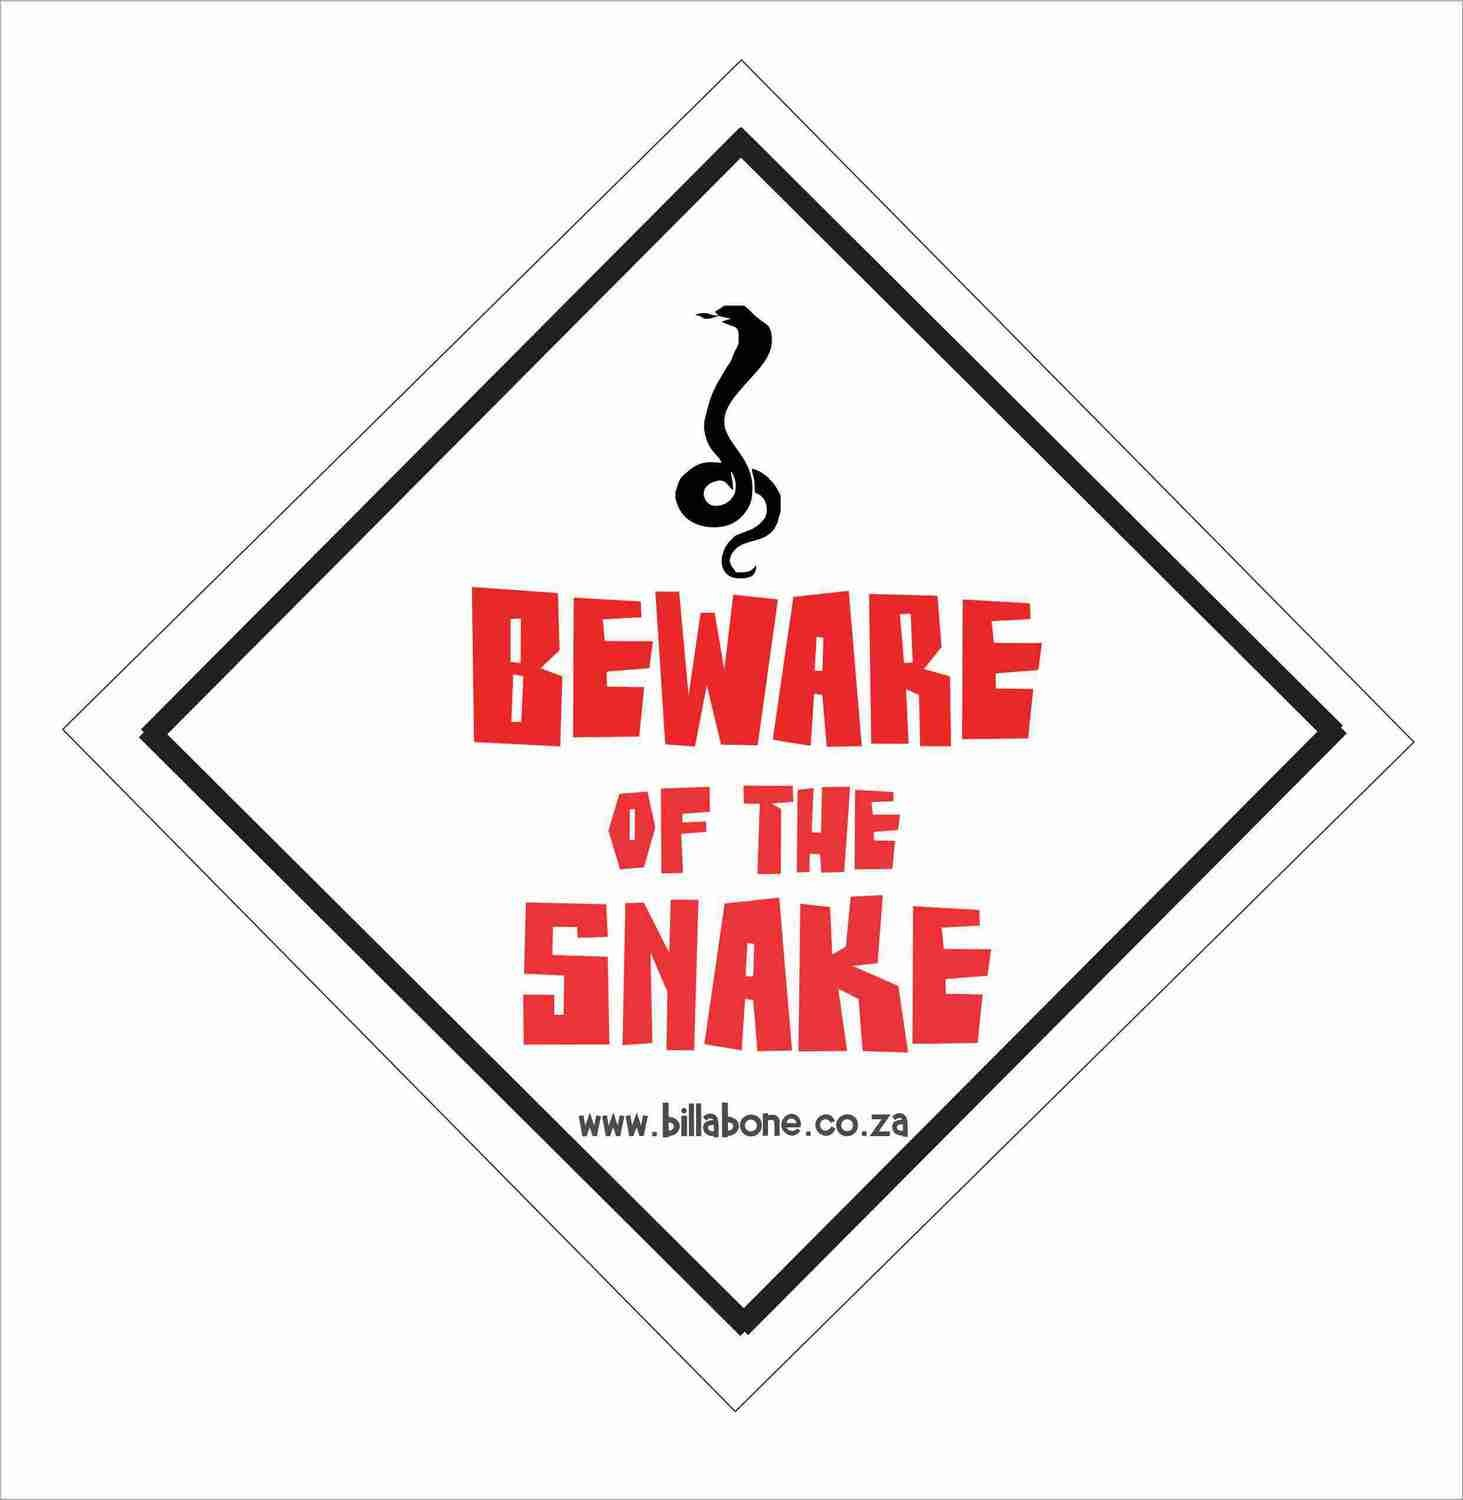 Billabone - Beware of the snake On Board Sign or Decal